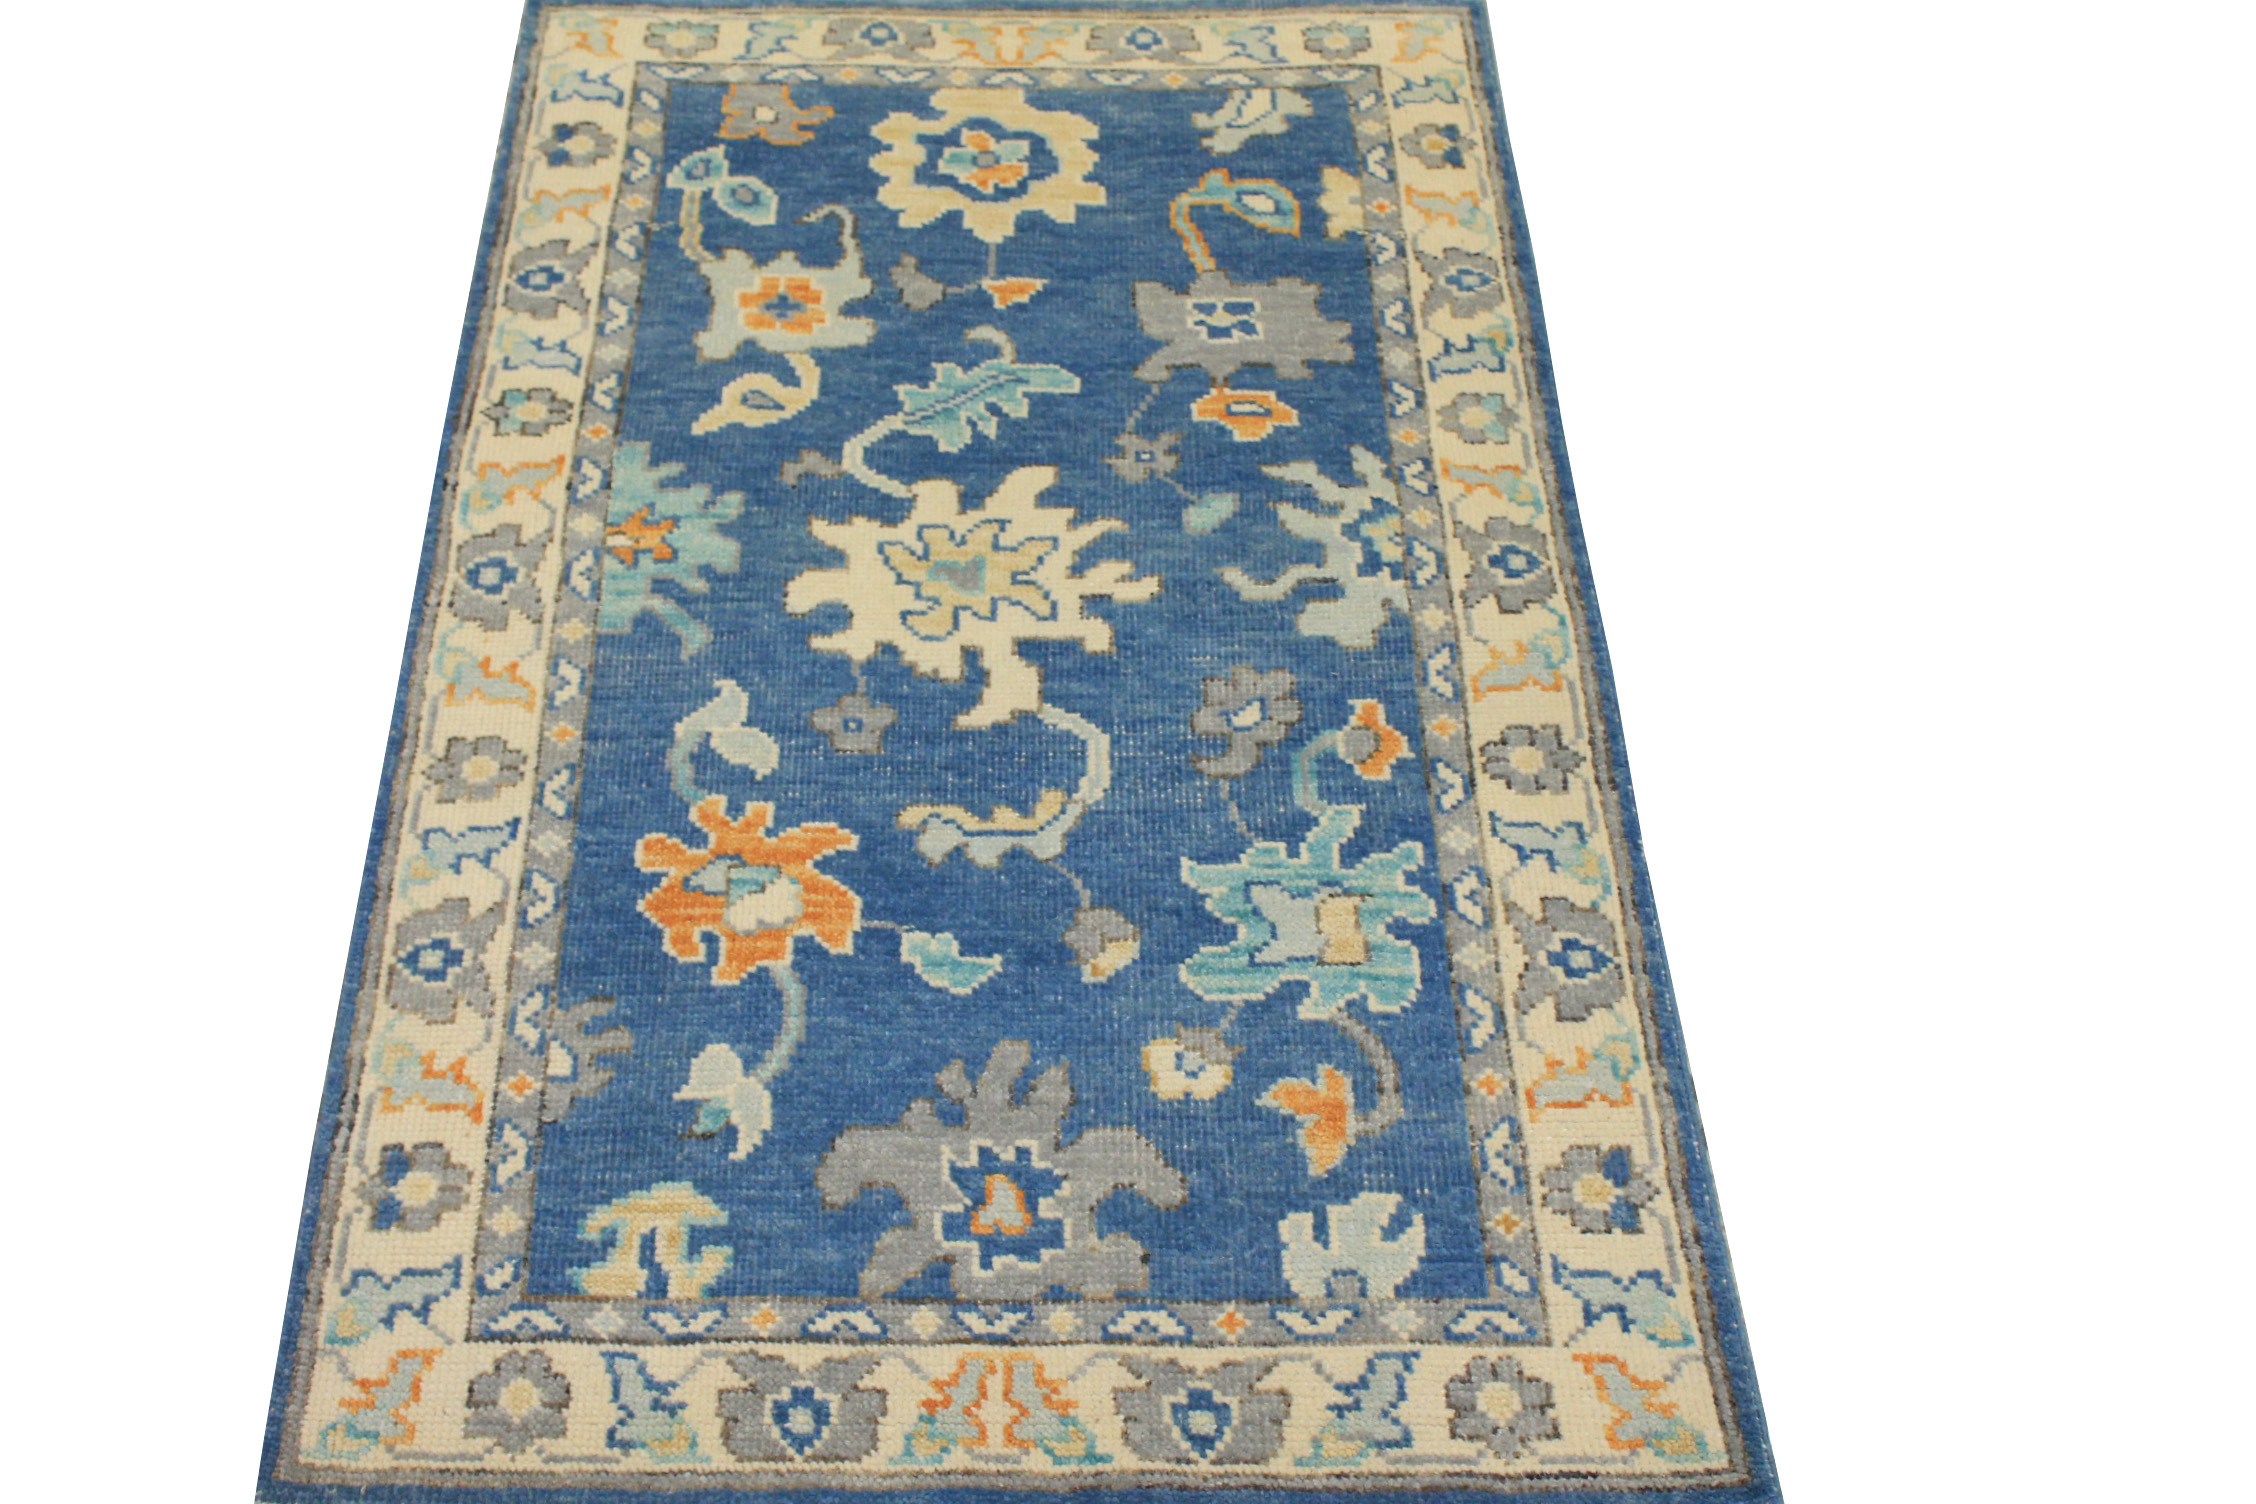 3x5 Oushak Hand Knotted Wool Area Rug - MR024418